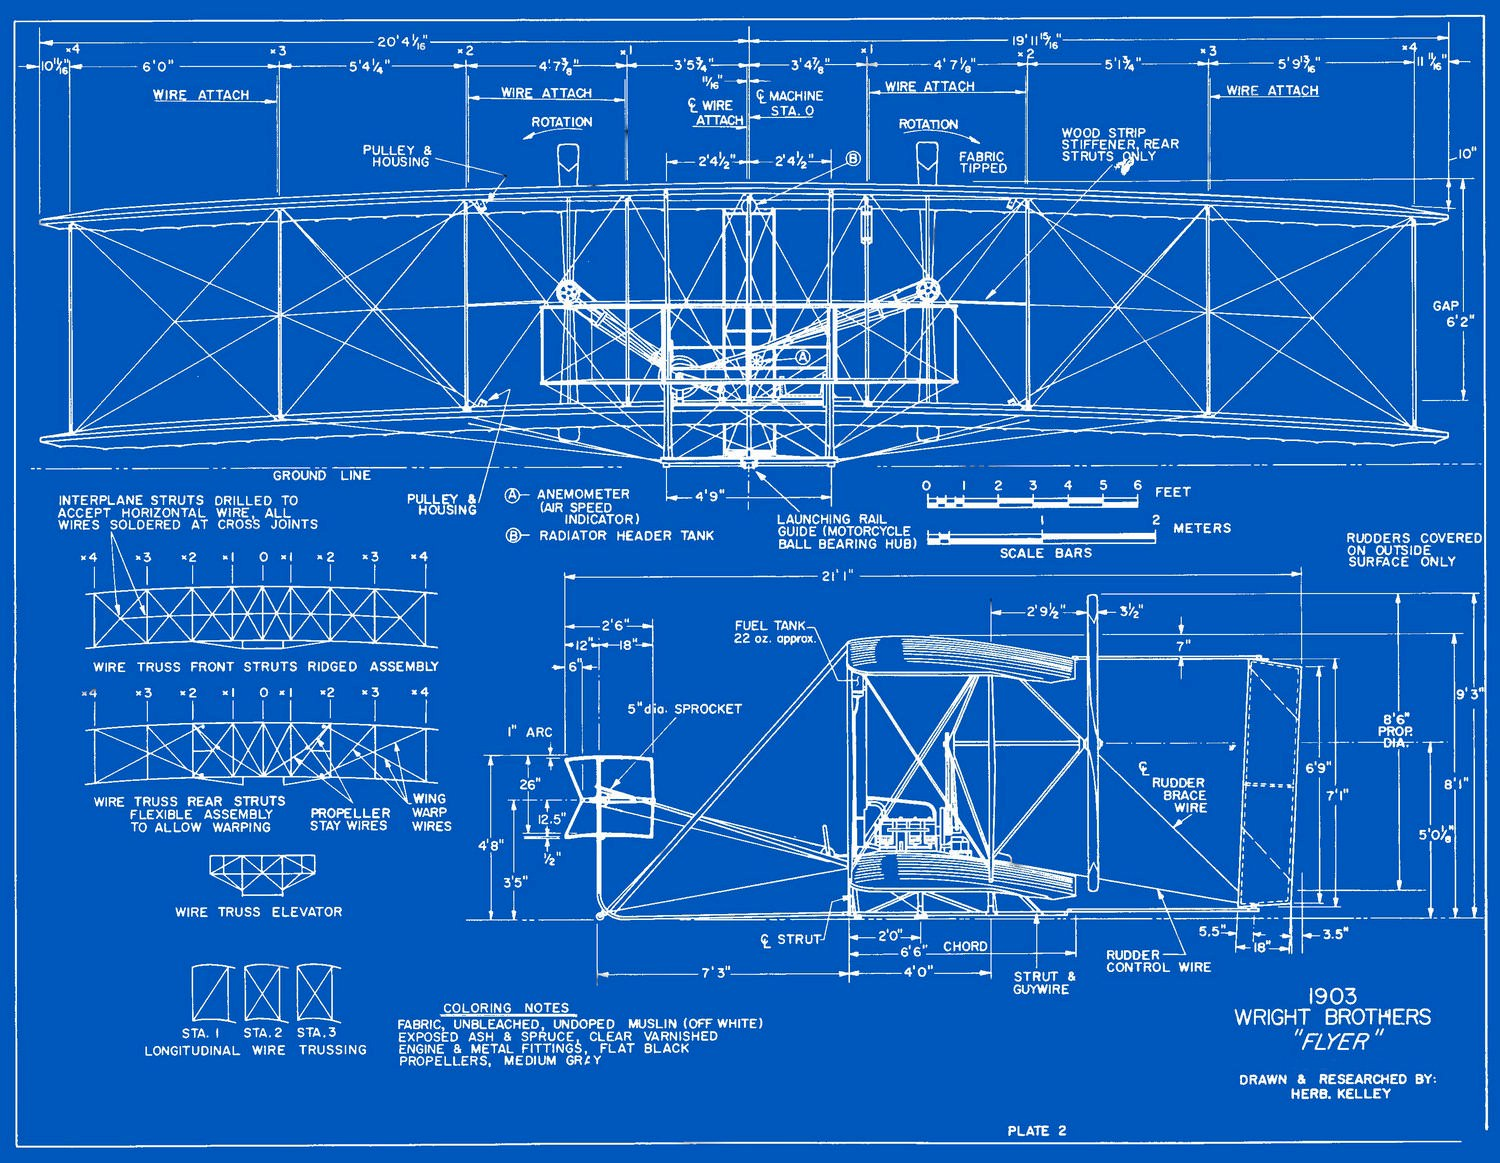 1903 wright flyer blueprints free download for Free blueprints online